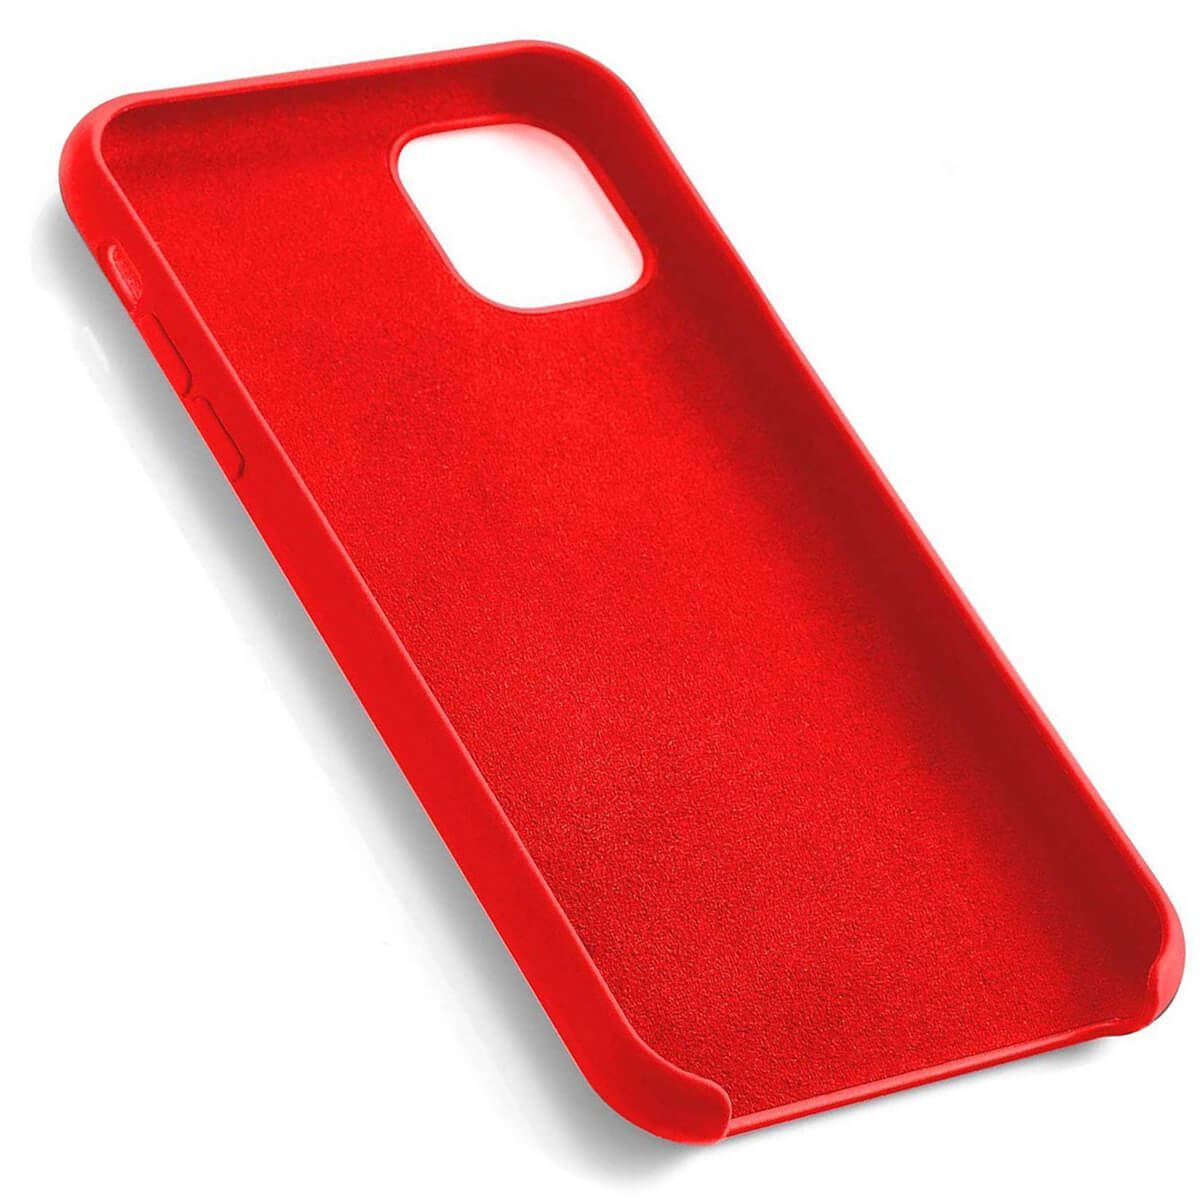 Liquid-Silicone-Shockproof-Case-For-Apple-iPhone-Soft-Matte-Back-Phone-Cover thumbnail 27